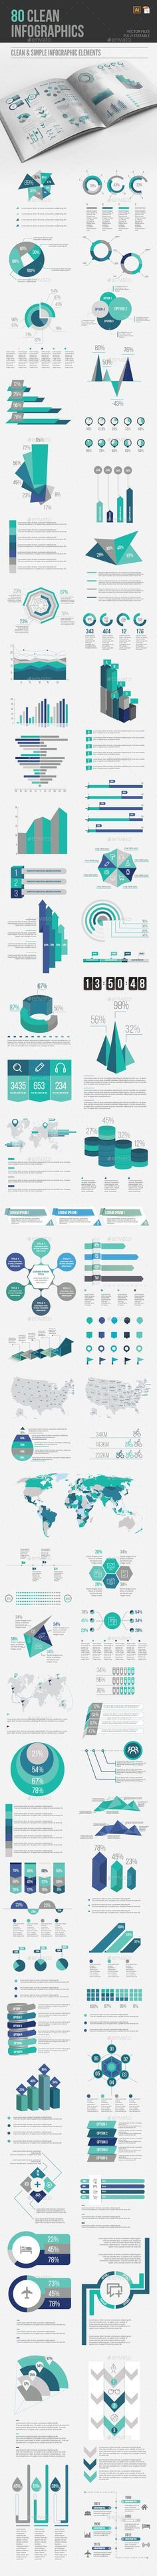 Infographic Element Templates Vector EPS, AI Illustrator. Download here: https://graphicriver.net/item/infographic-elements/17376832?ref=ksioks